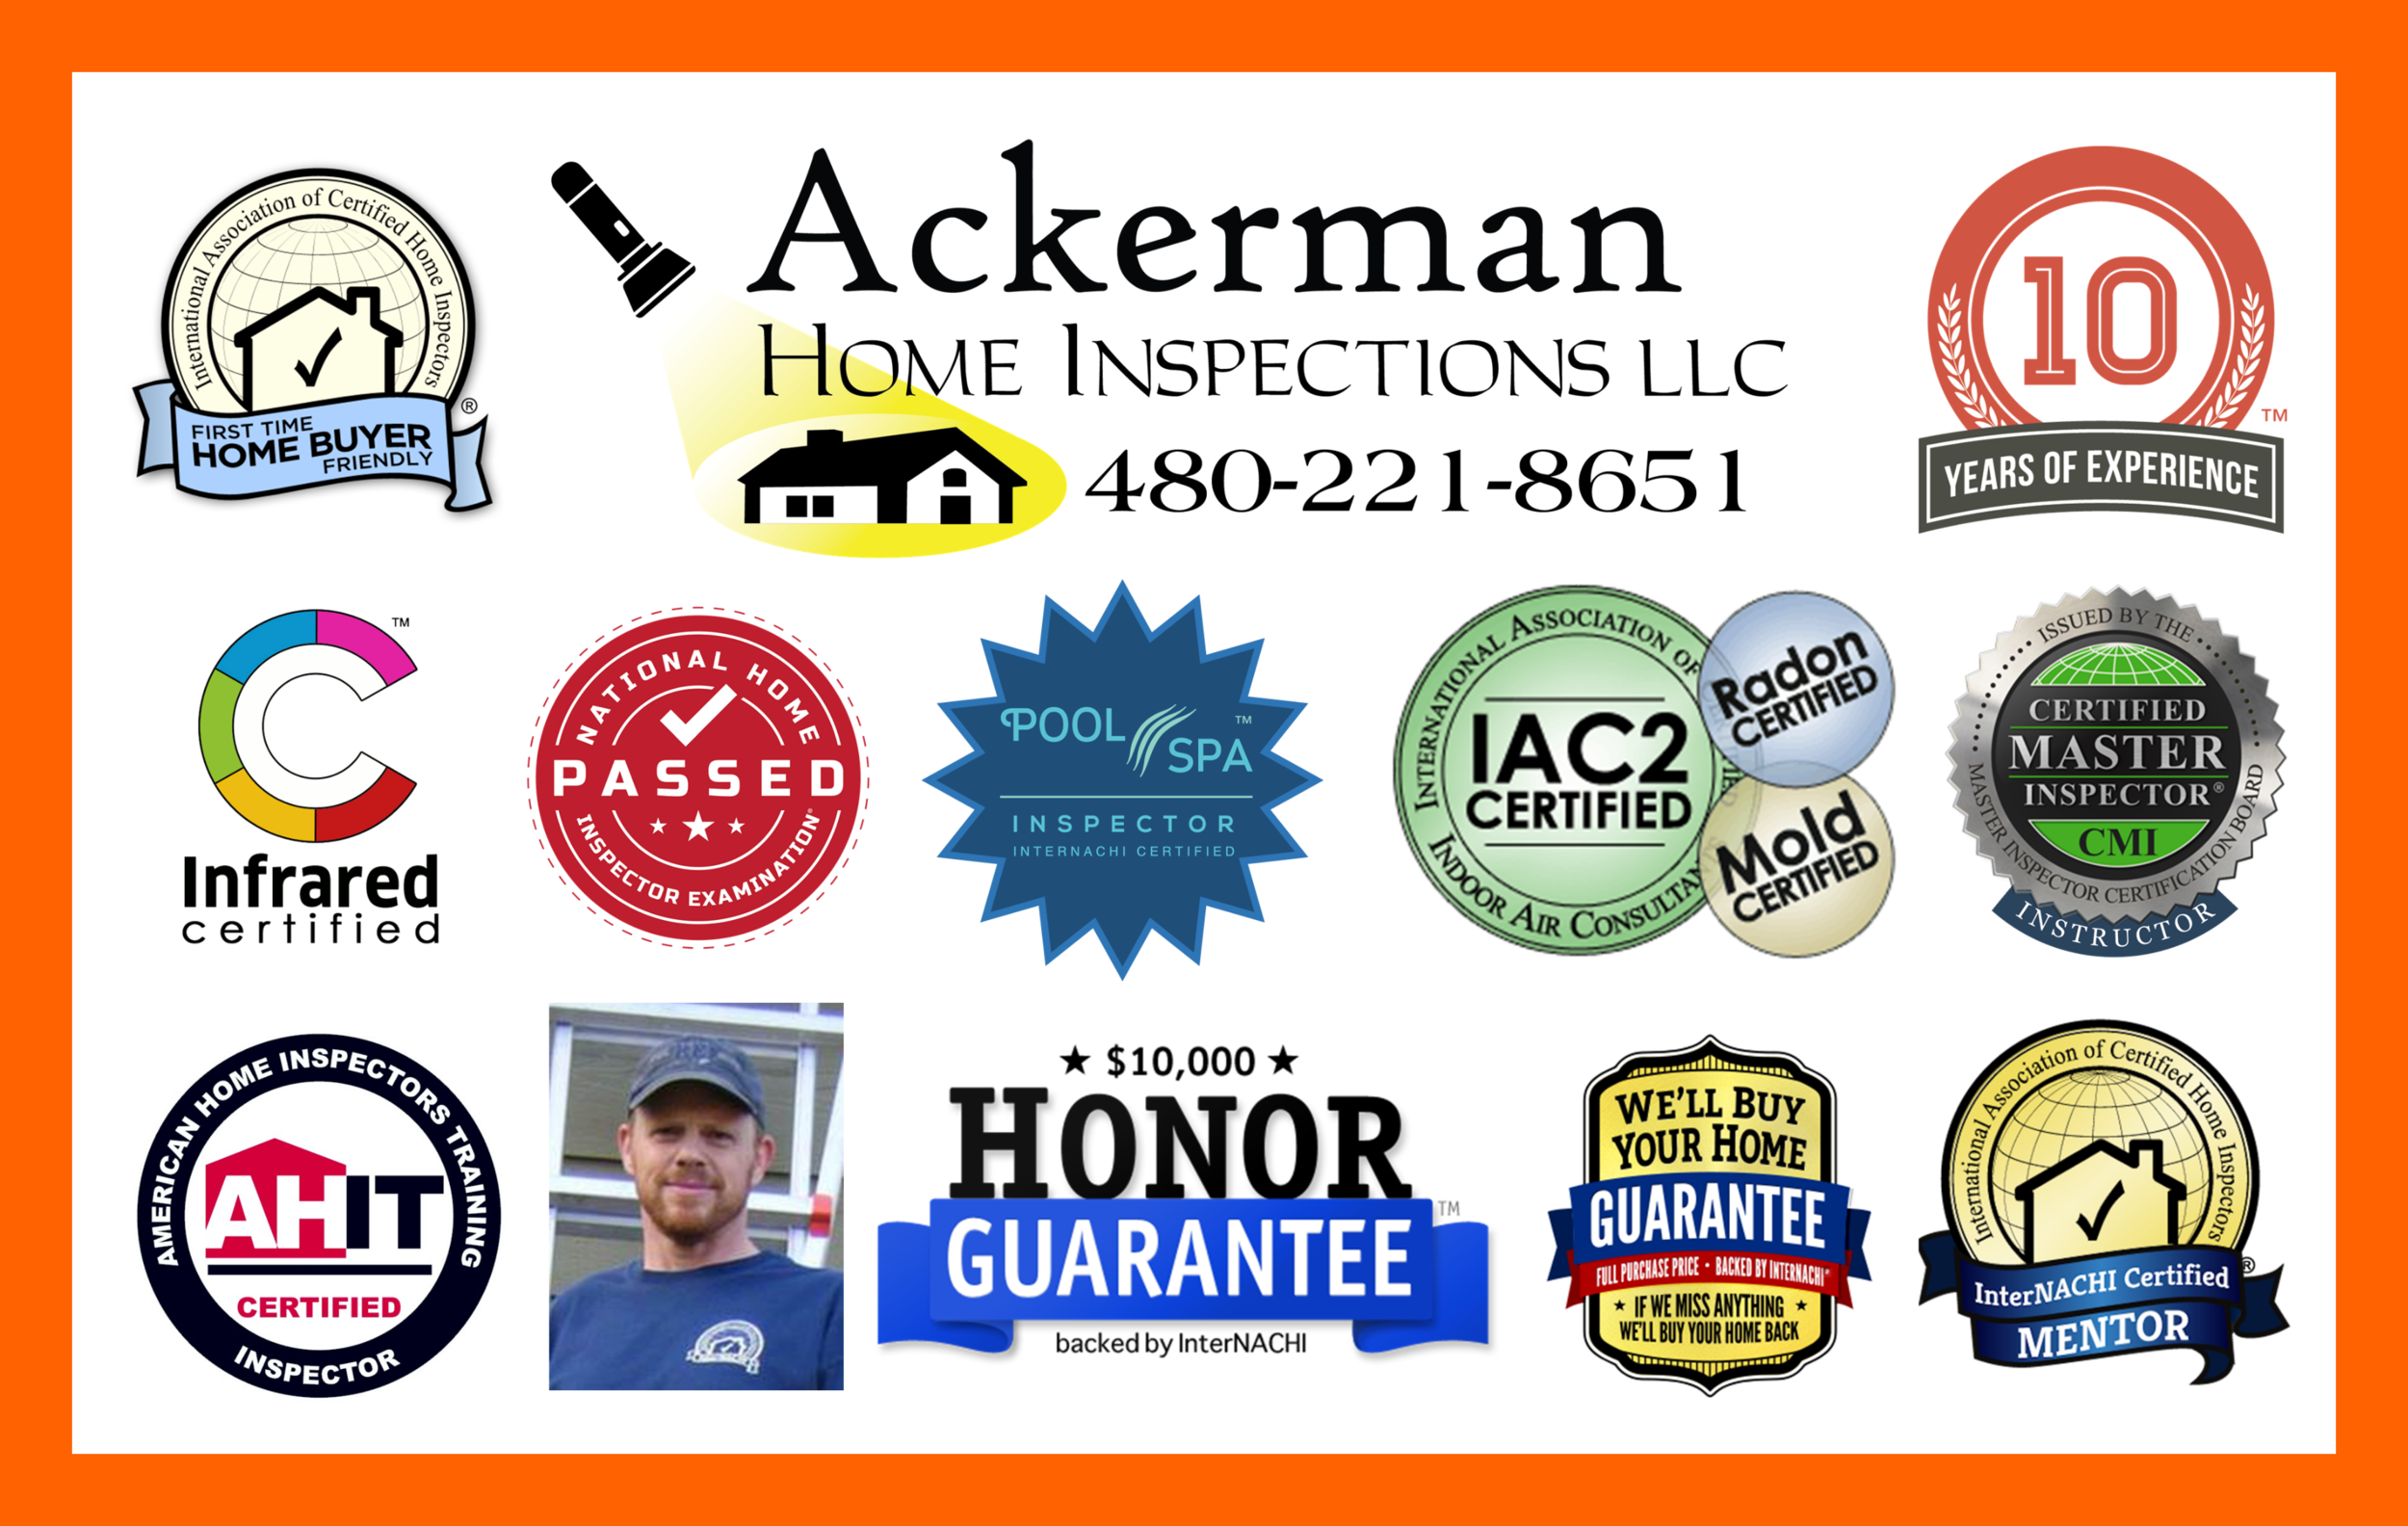 Serving the entire Phoenix Metro Area and Beyond. Over 10 years of experience, over 30 certifications, past instructor and mentor to students who are training to becoming home inspectors.